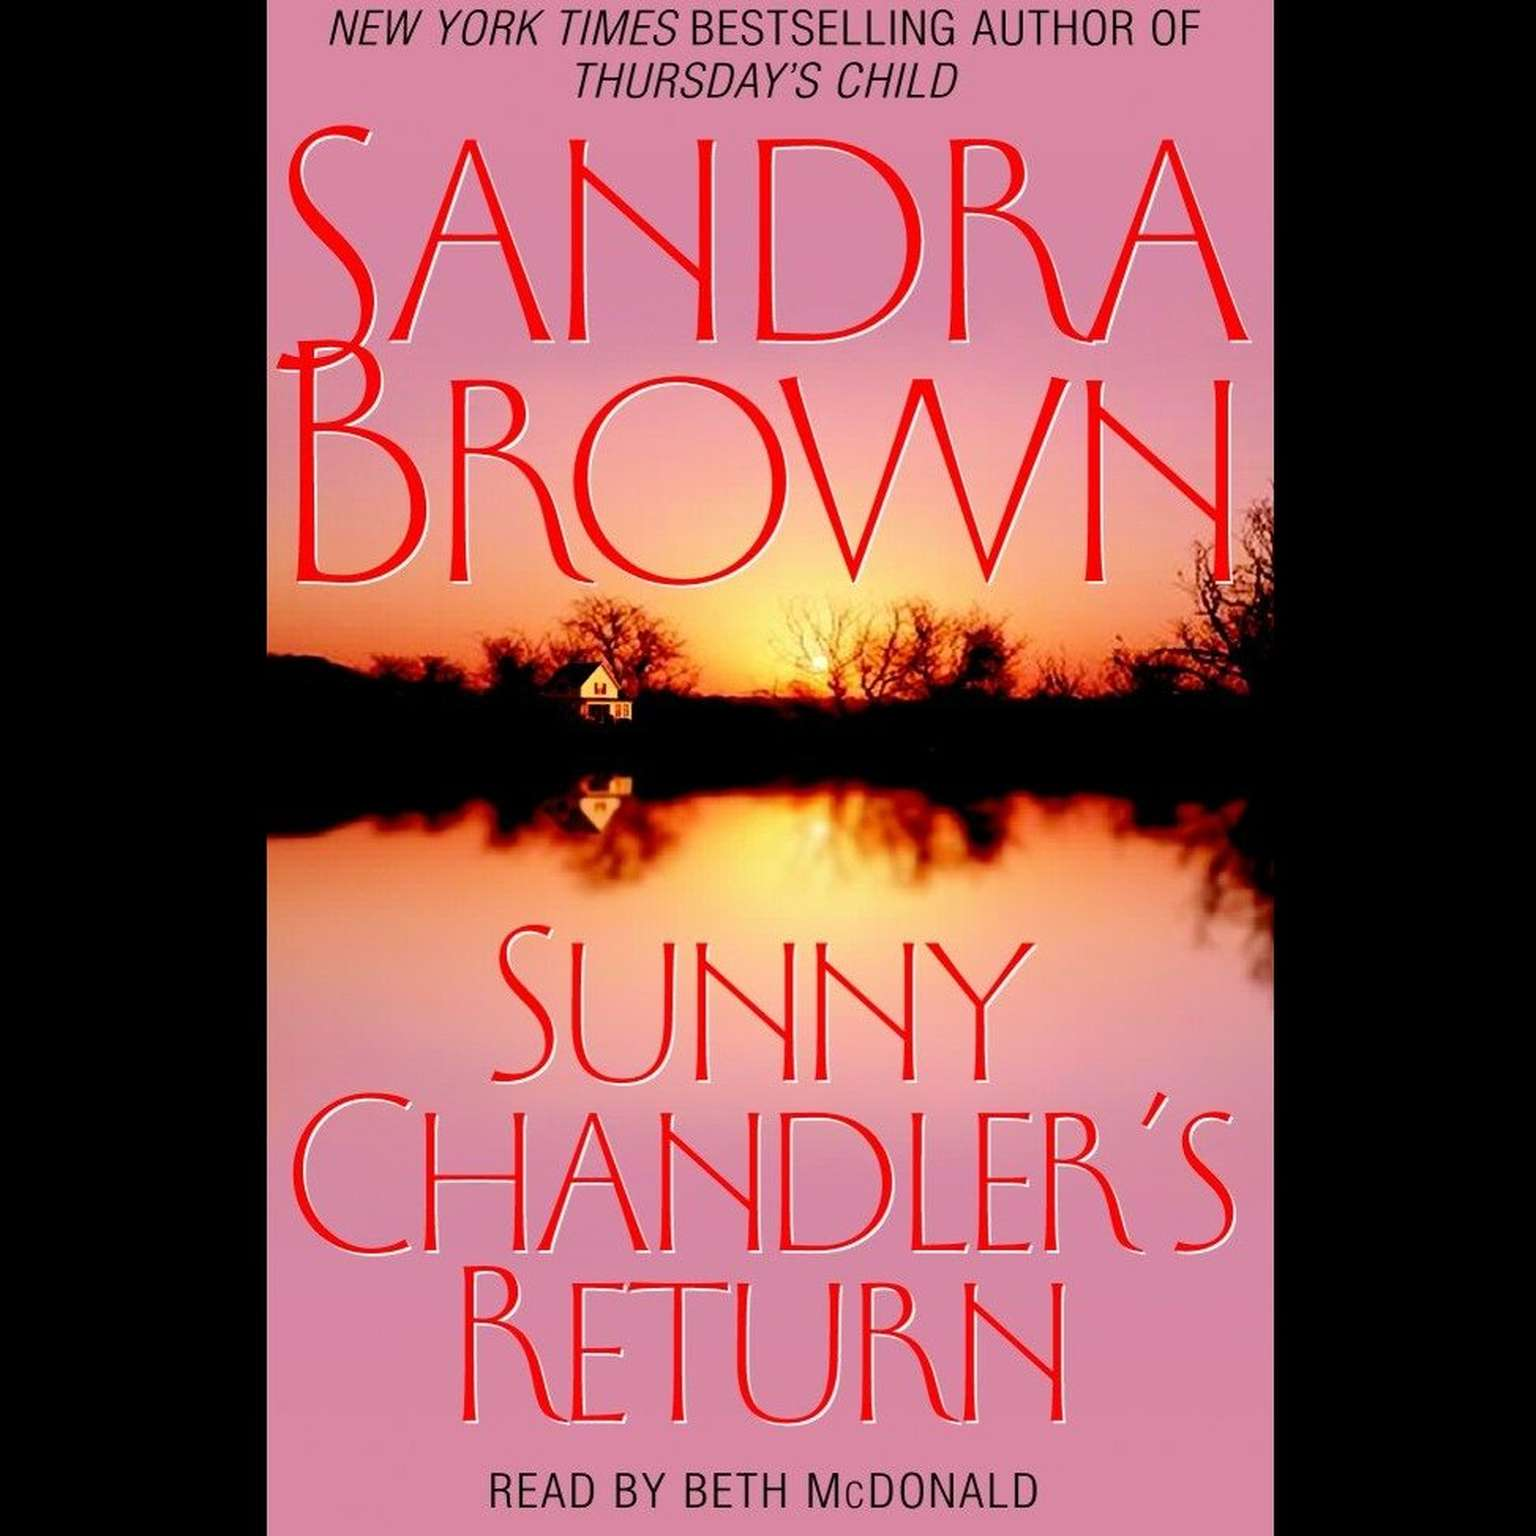 Printable Sunny Chandler's Return: A Novel Audiobook Cover Art